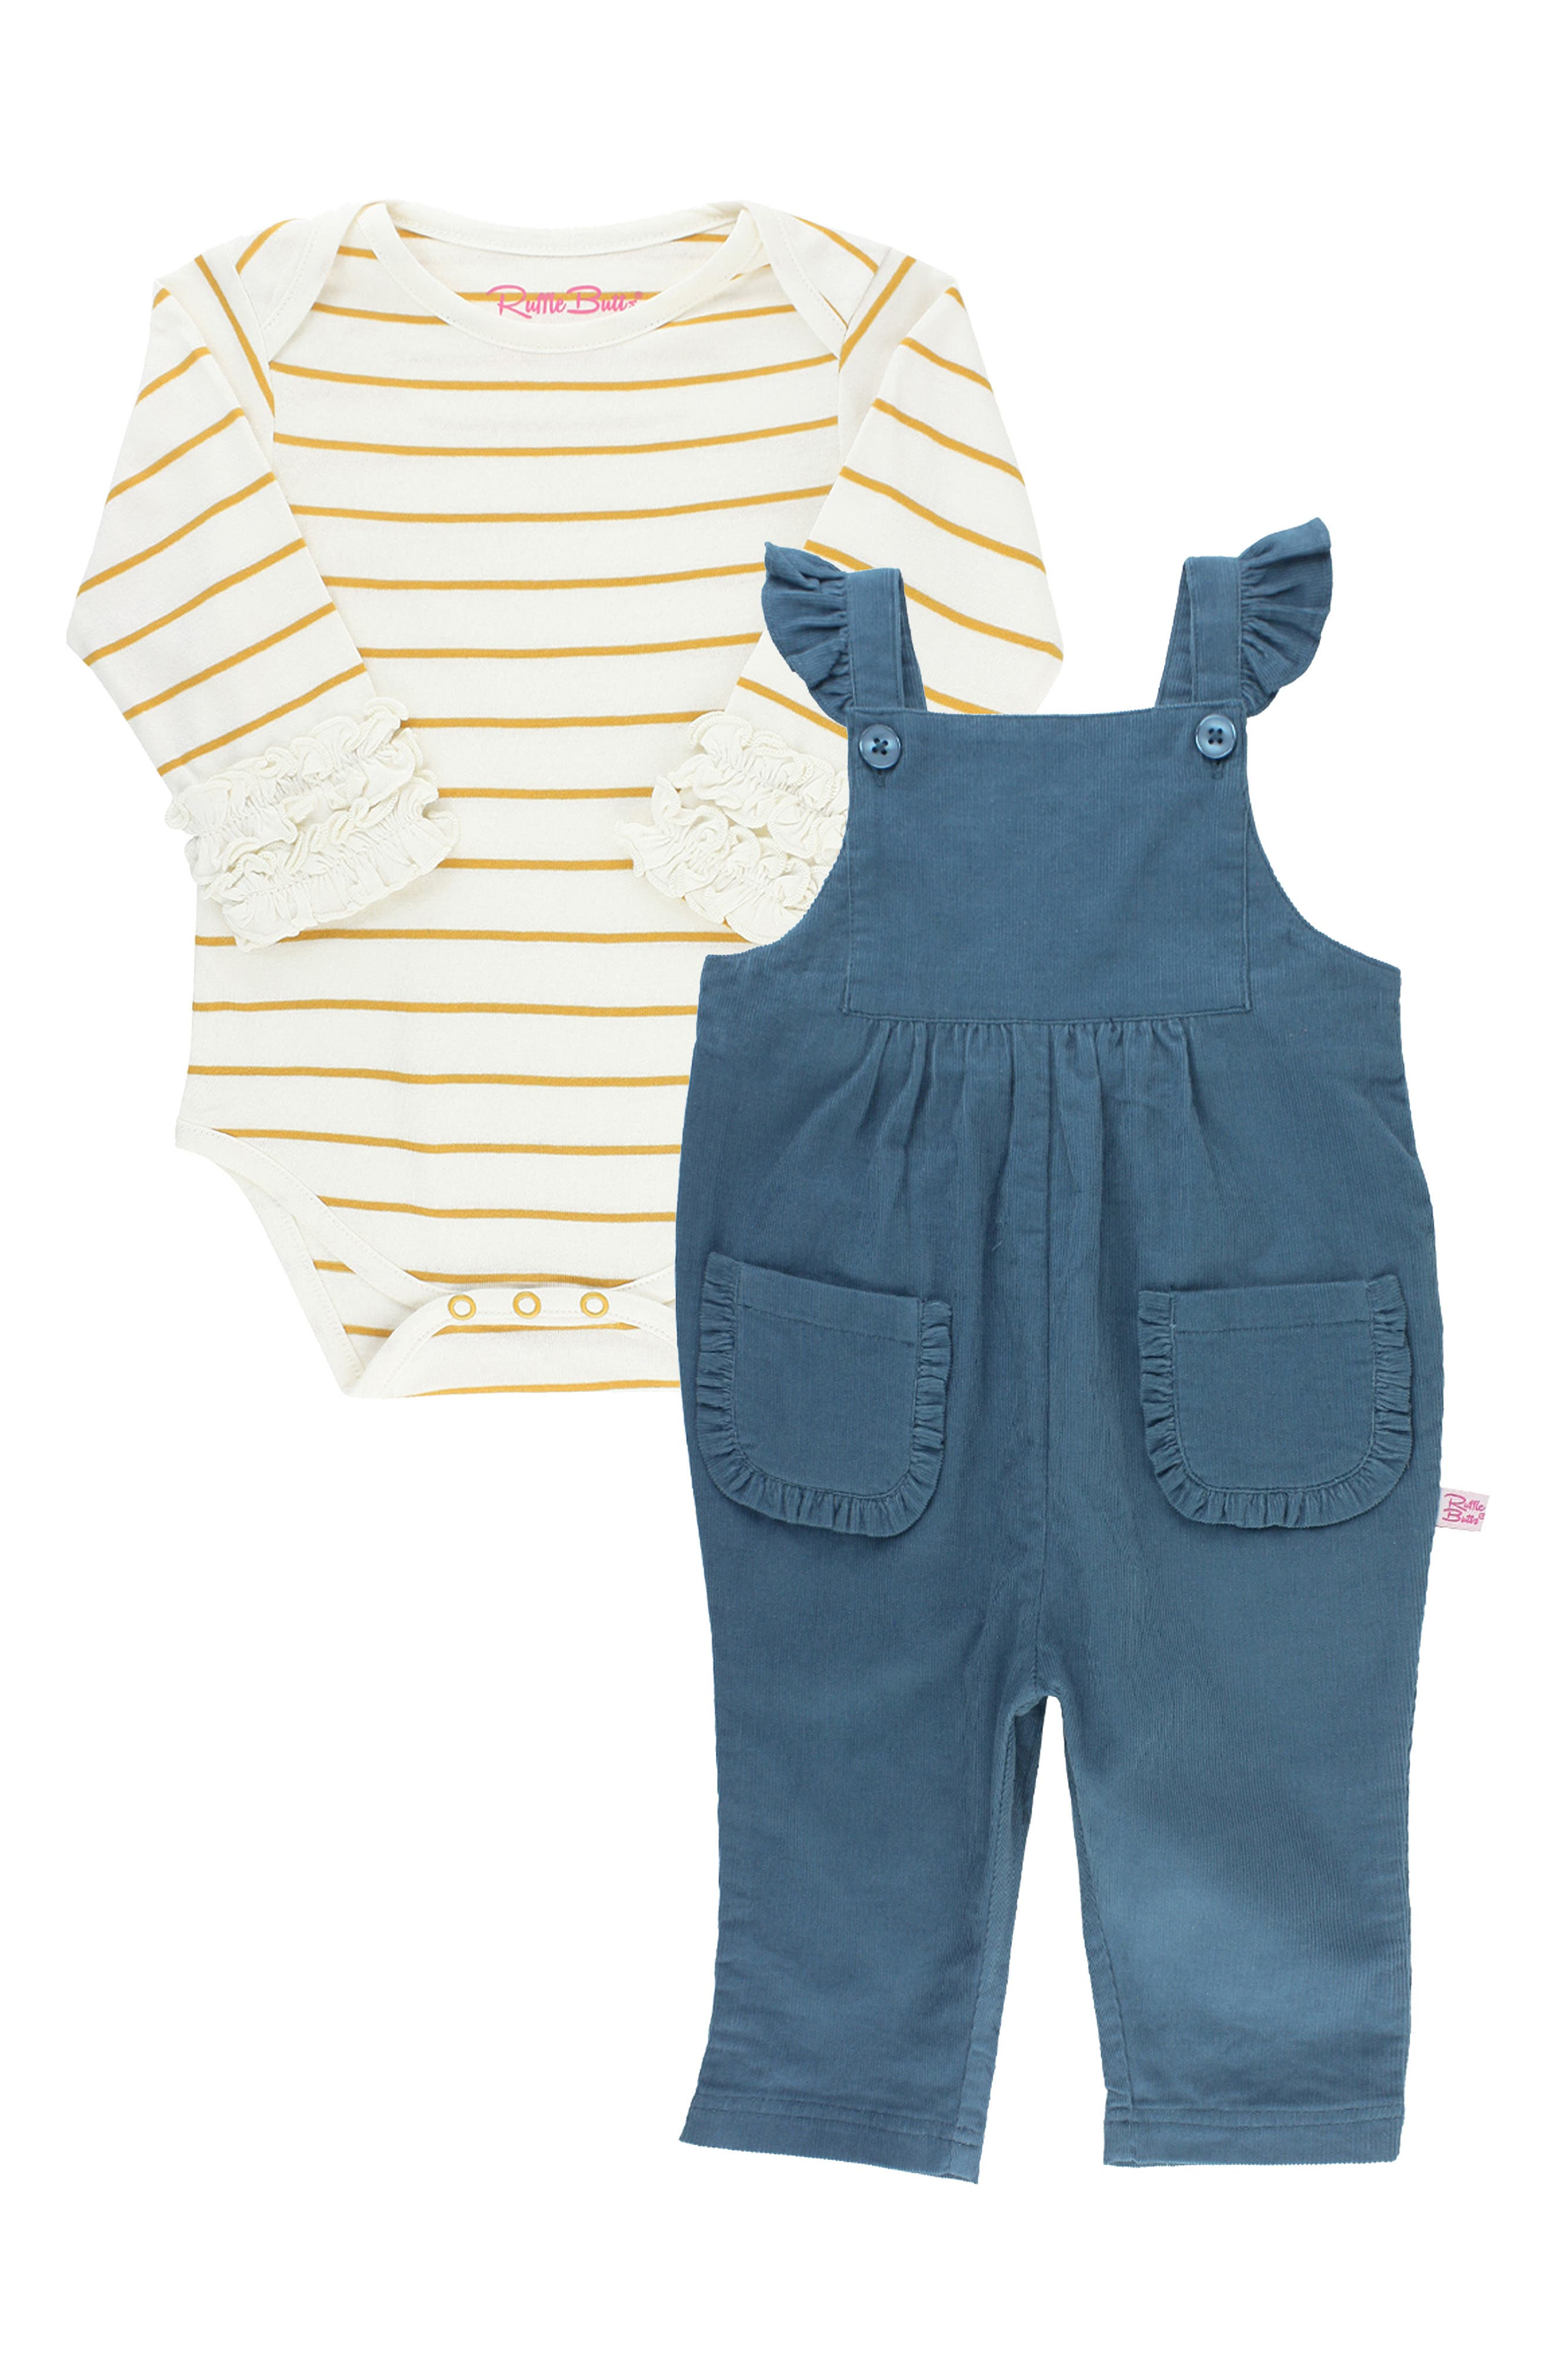 Ruffly straps add extra charm to cotton jersey overalls that coordinate with a striped long-sleeve bodysuit for a play-ready look. Style Name: Rufflebutts Stripe Bodysuit & Overalls Set (Baby). Style Number: 6095618. Available in stores.